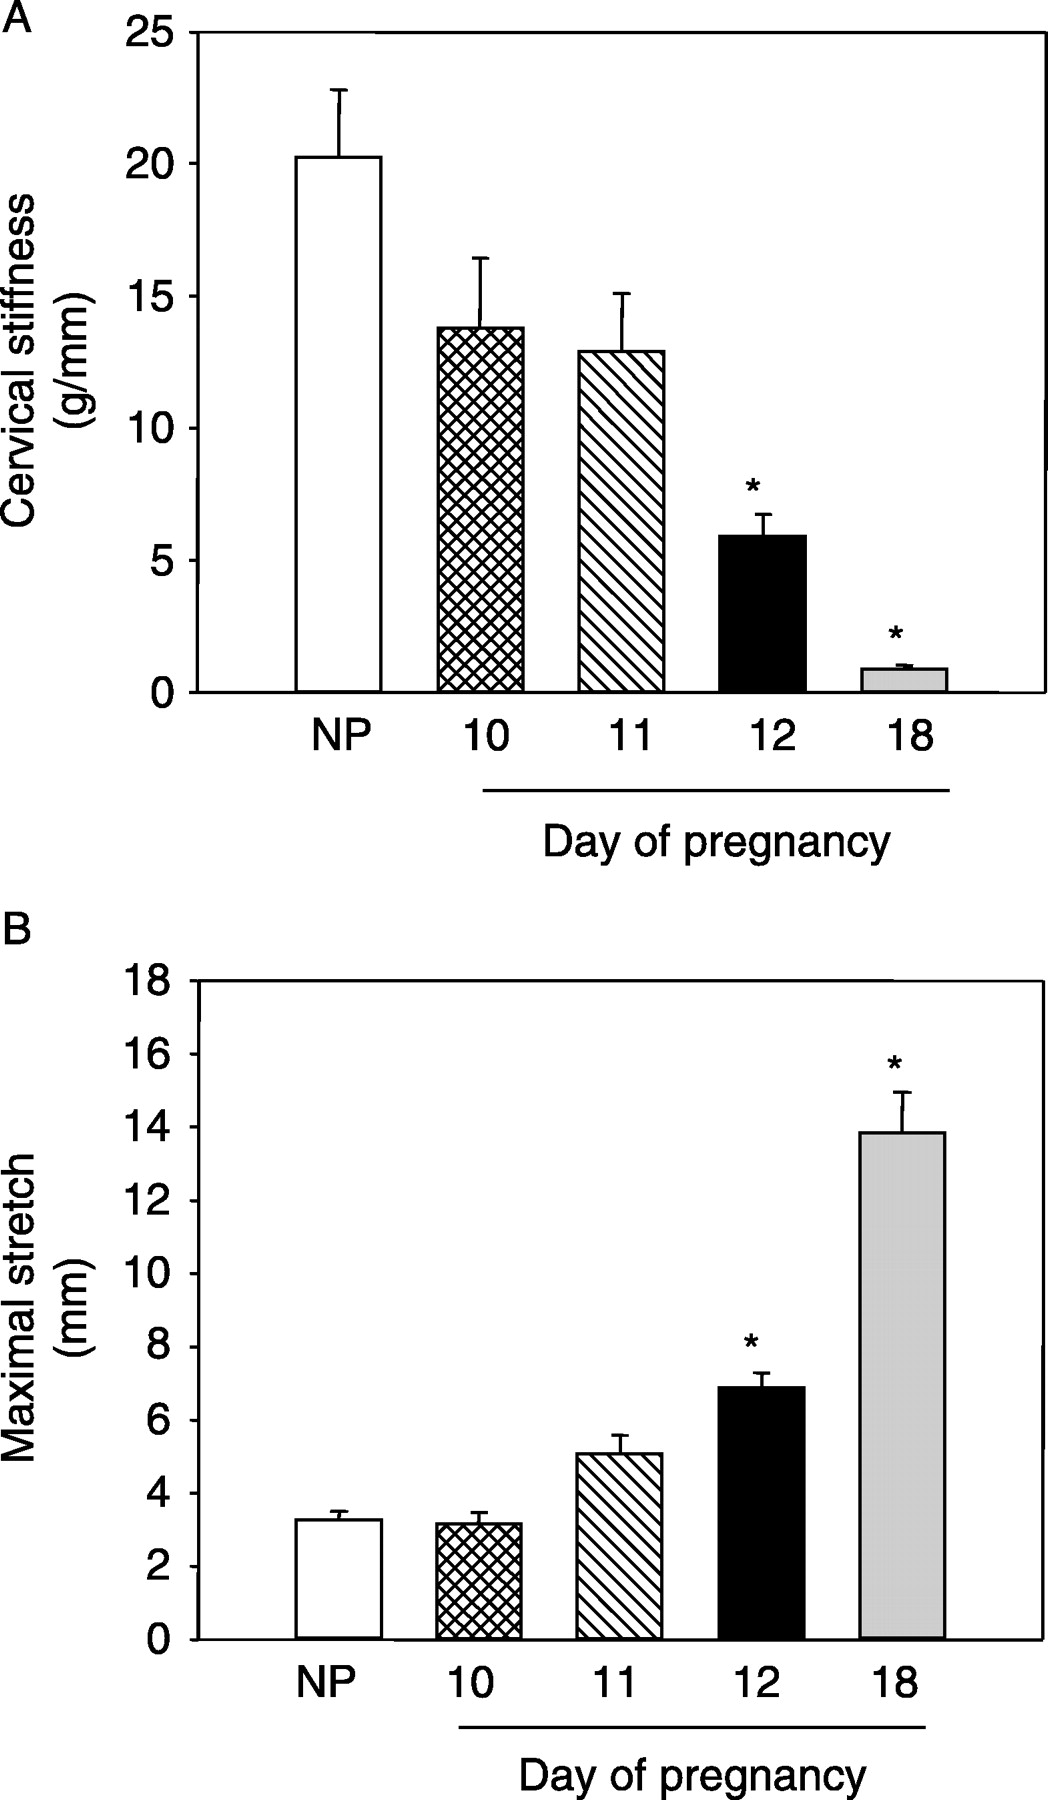 Cervical remodeling during pregnancy and parturition